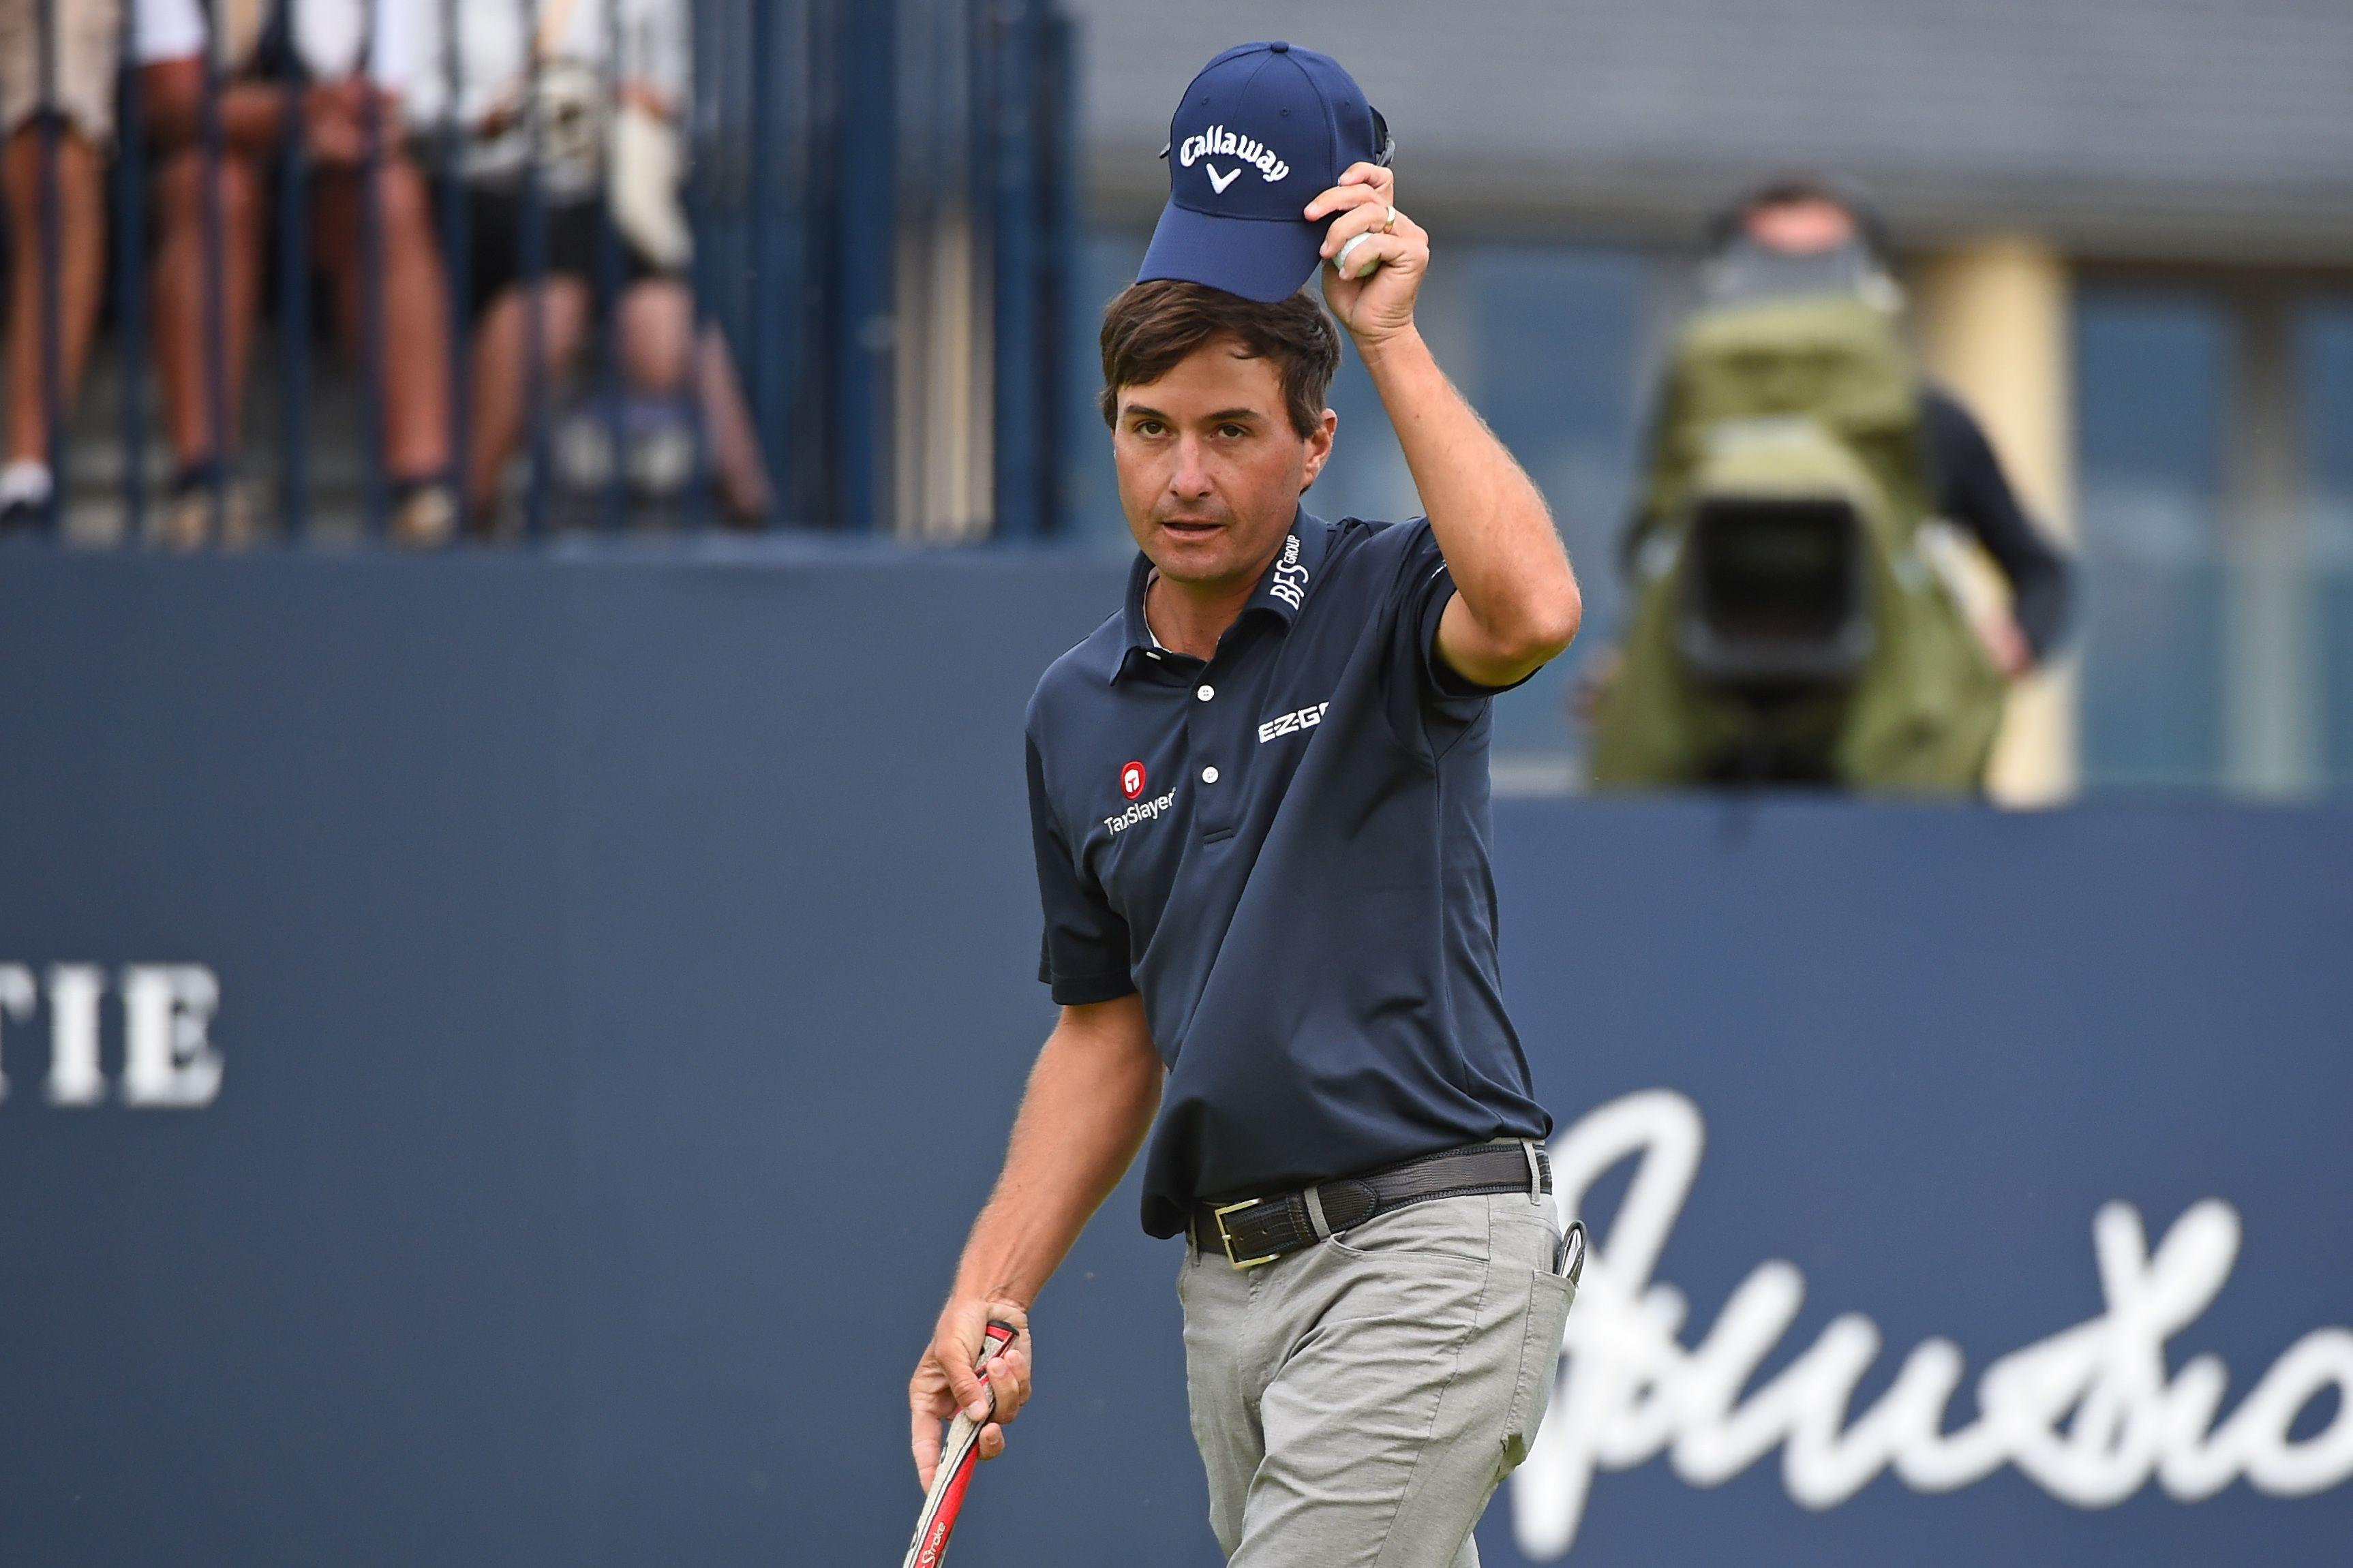 Kevin Kisner is one of the leaders going into the final round